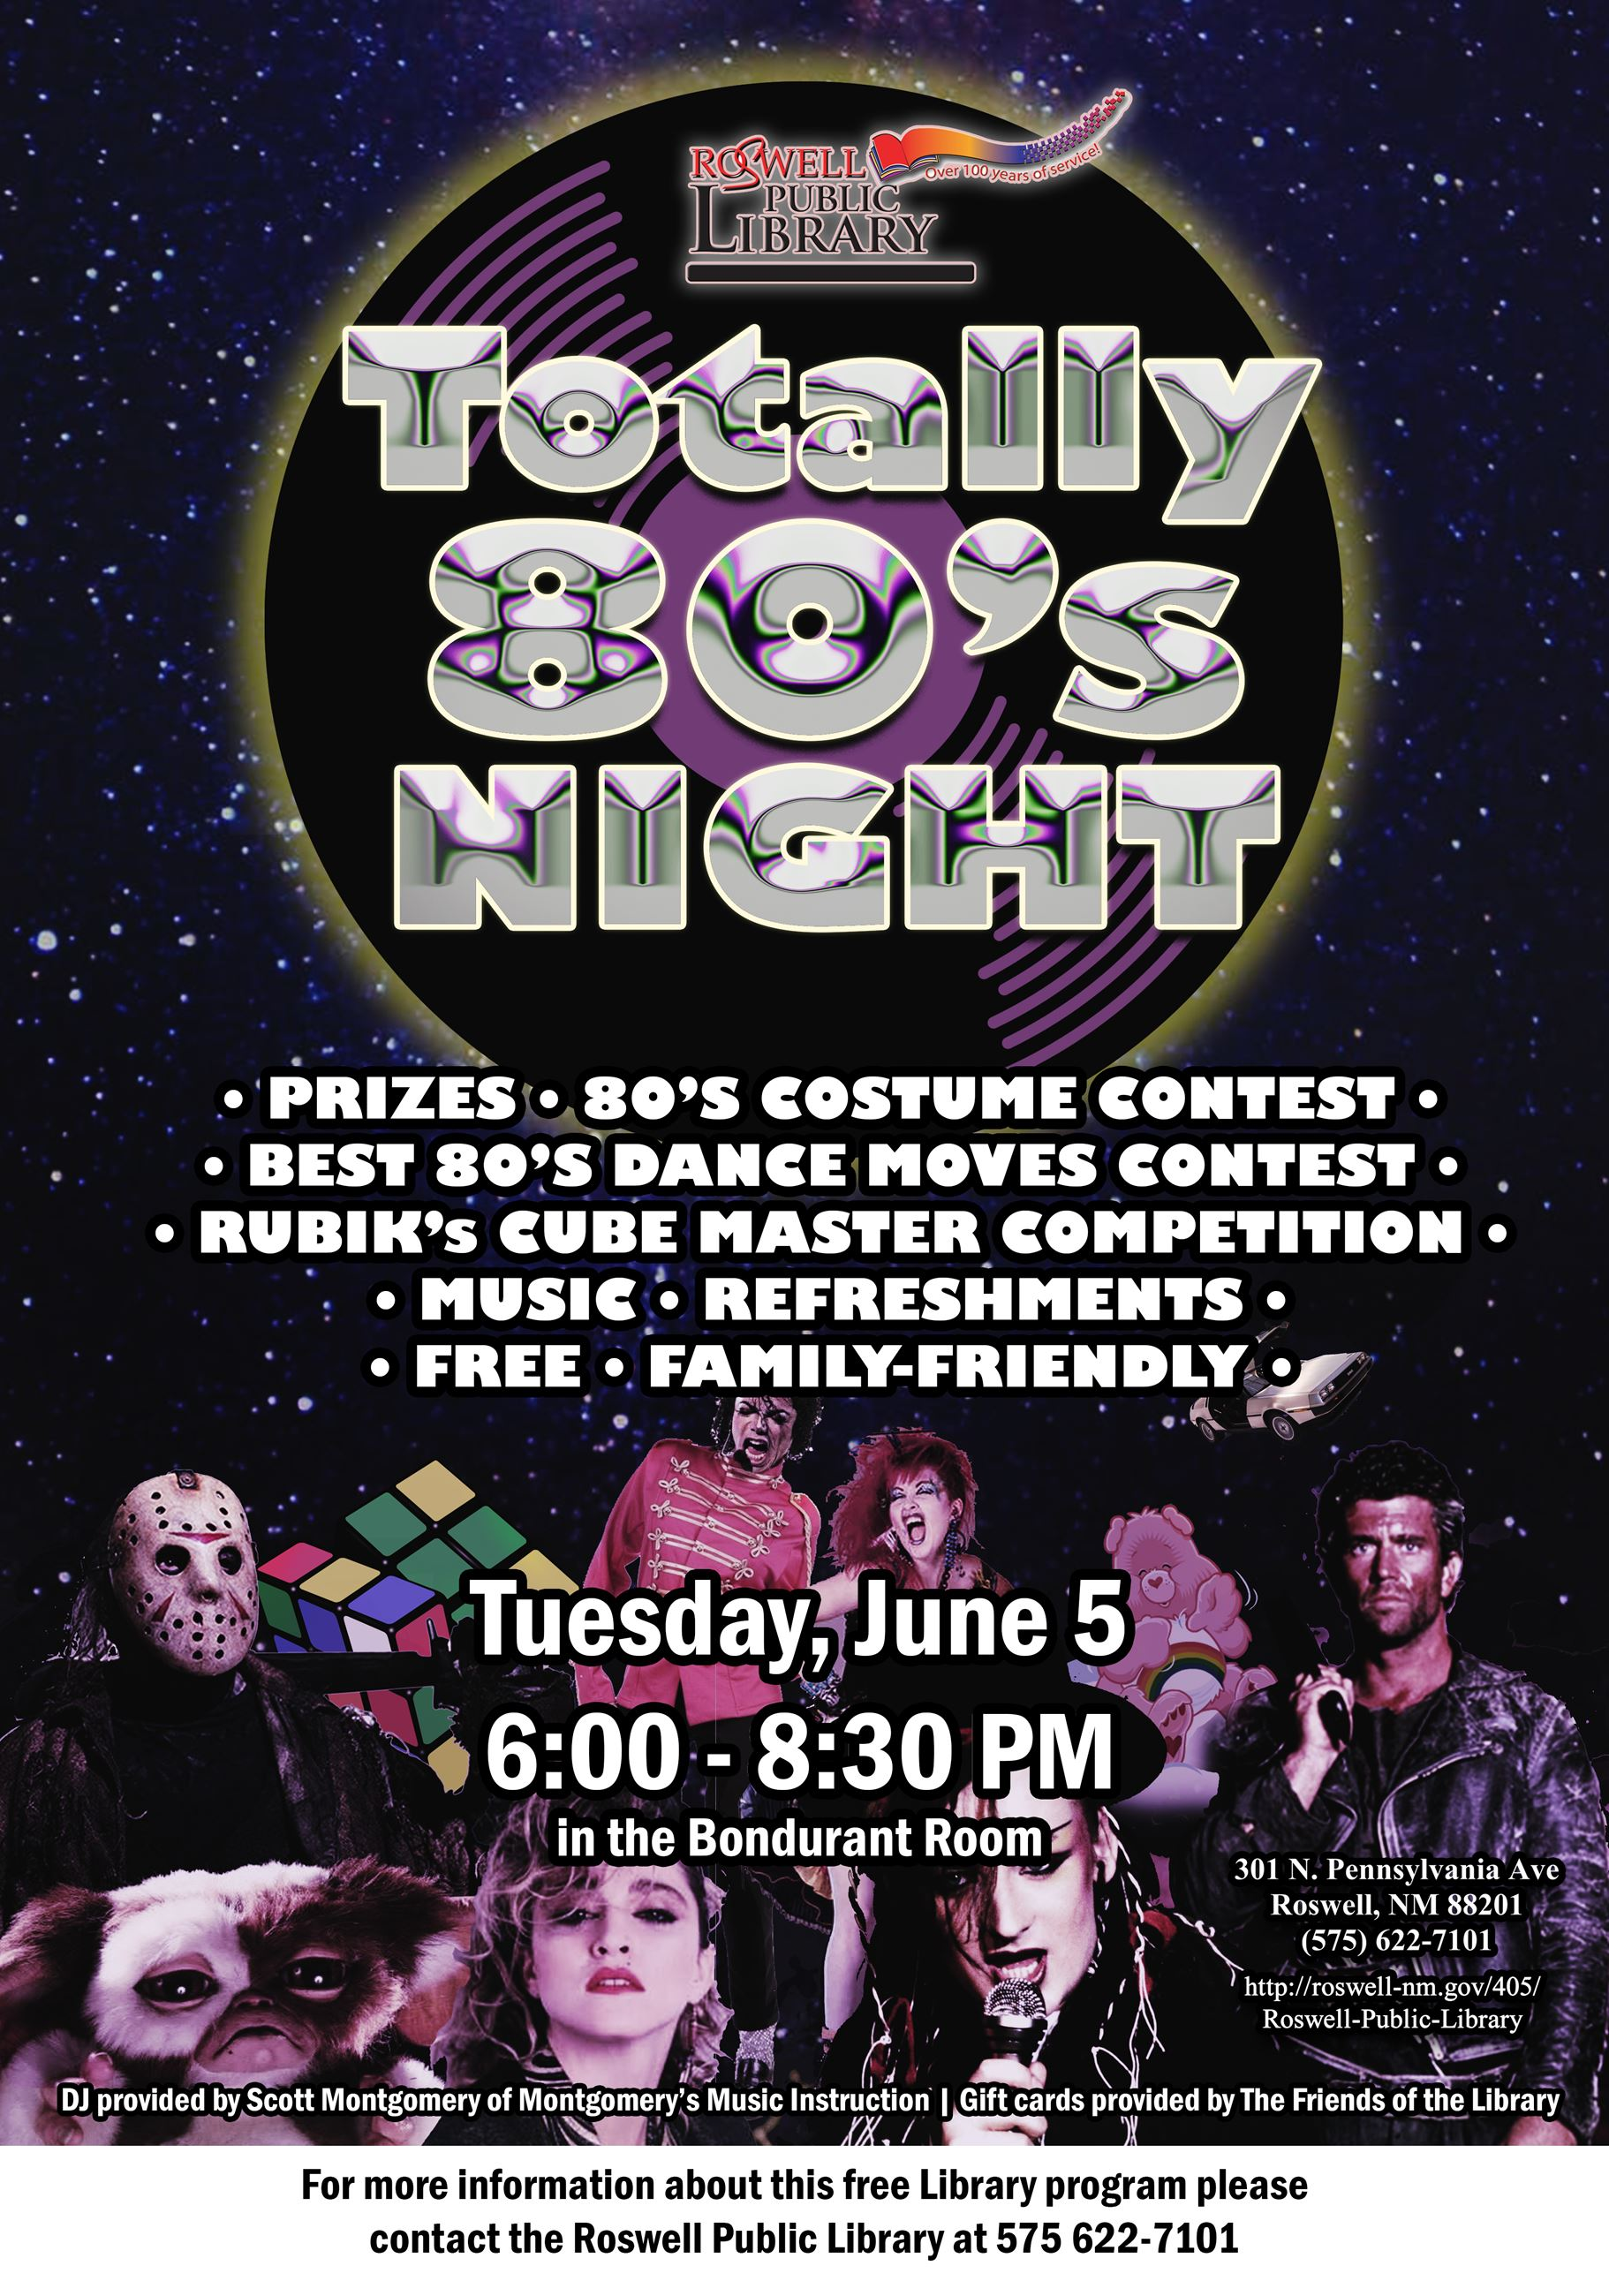 Totally 80's night at the Roswell Public Library